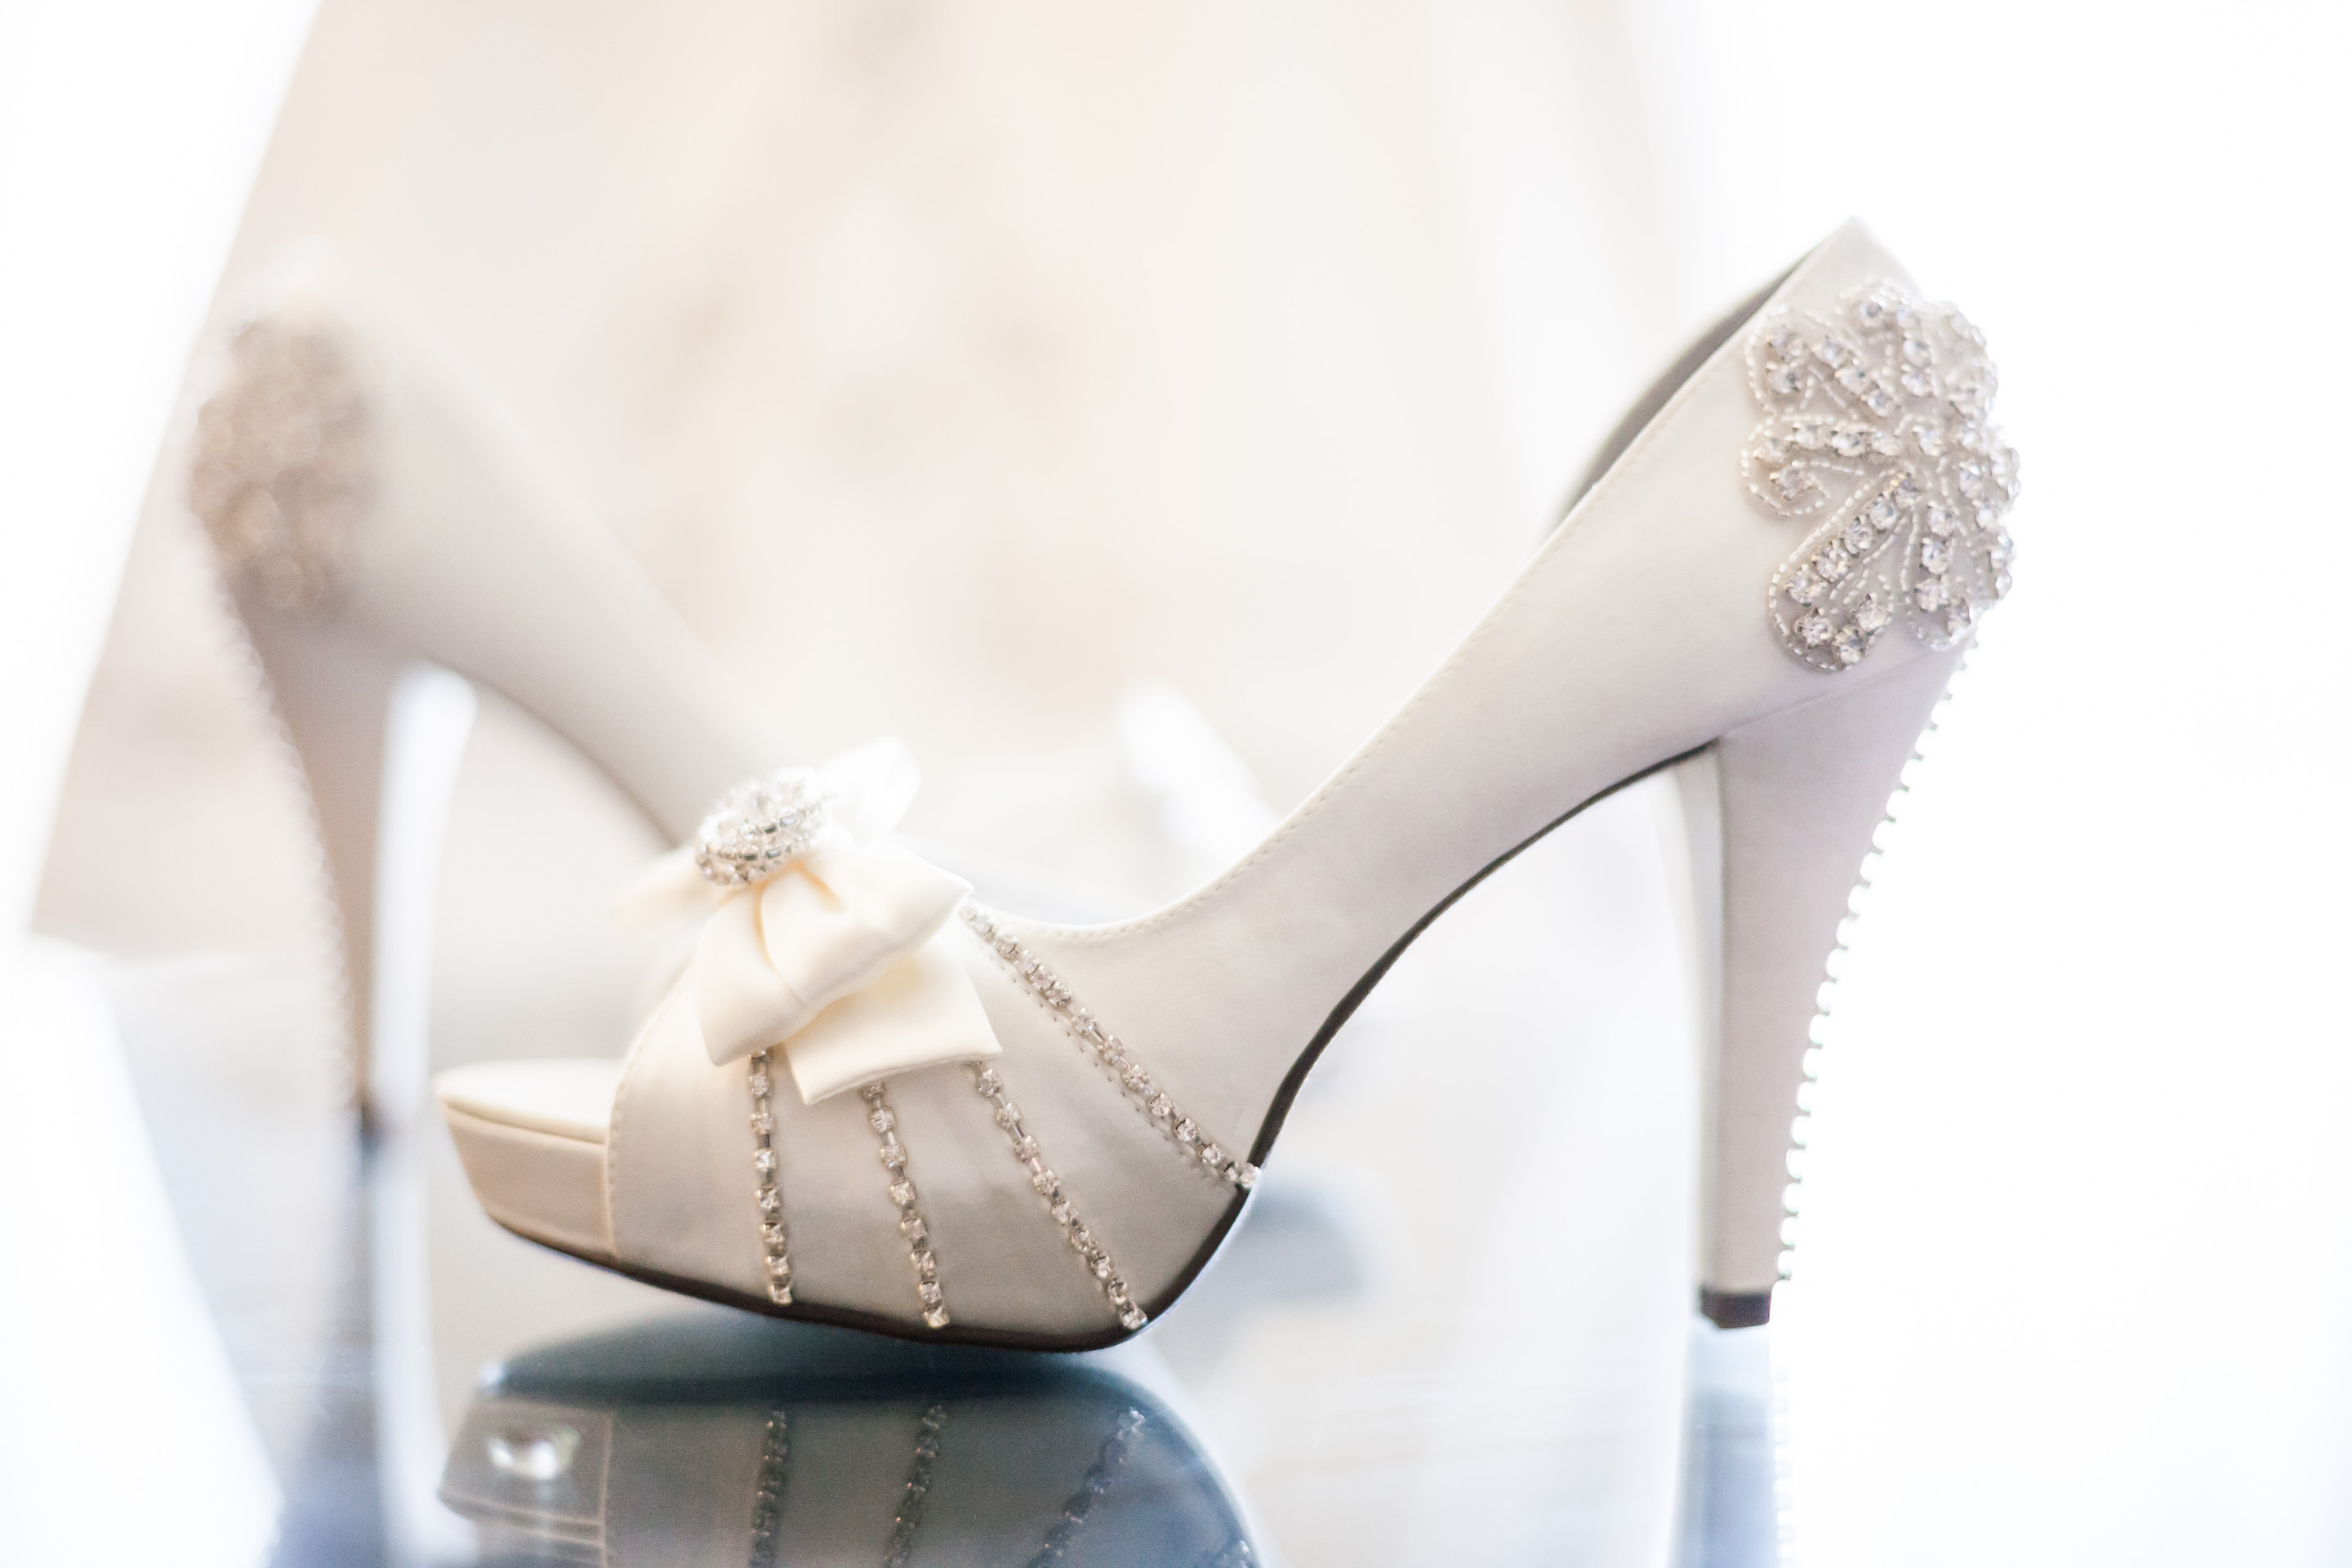 Epic-wedding-in-los-angeles-california-weddings-open-toe-bridal-heels-crystals.original